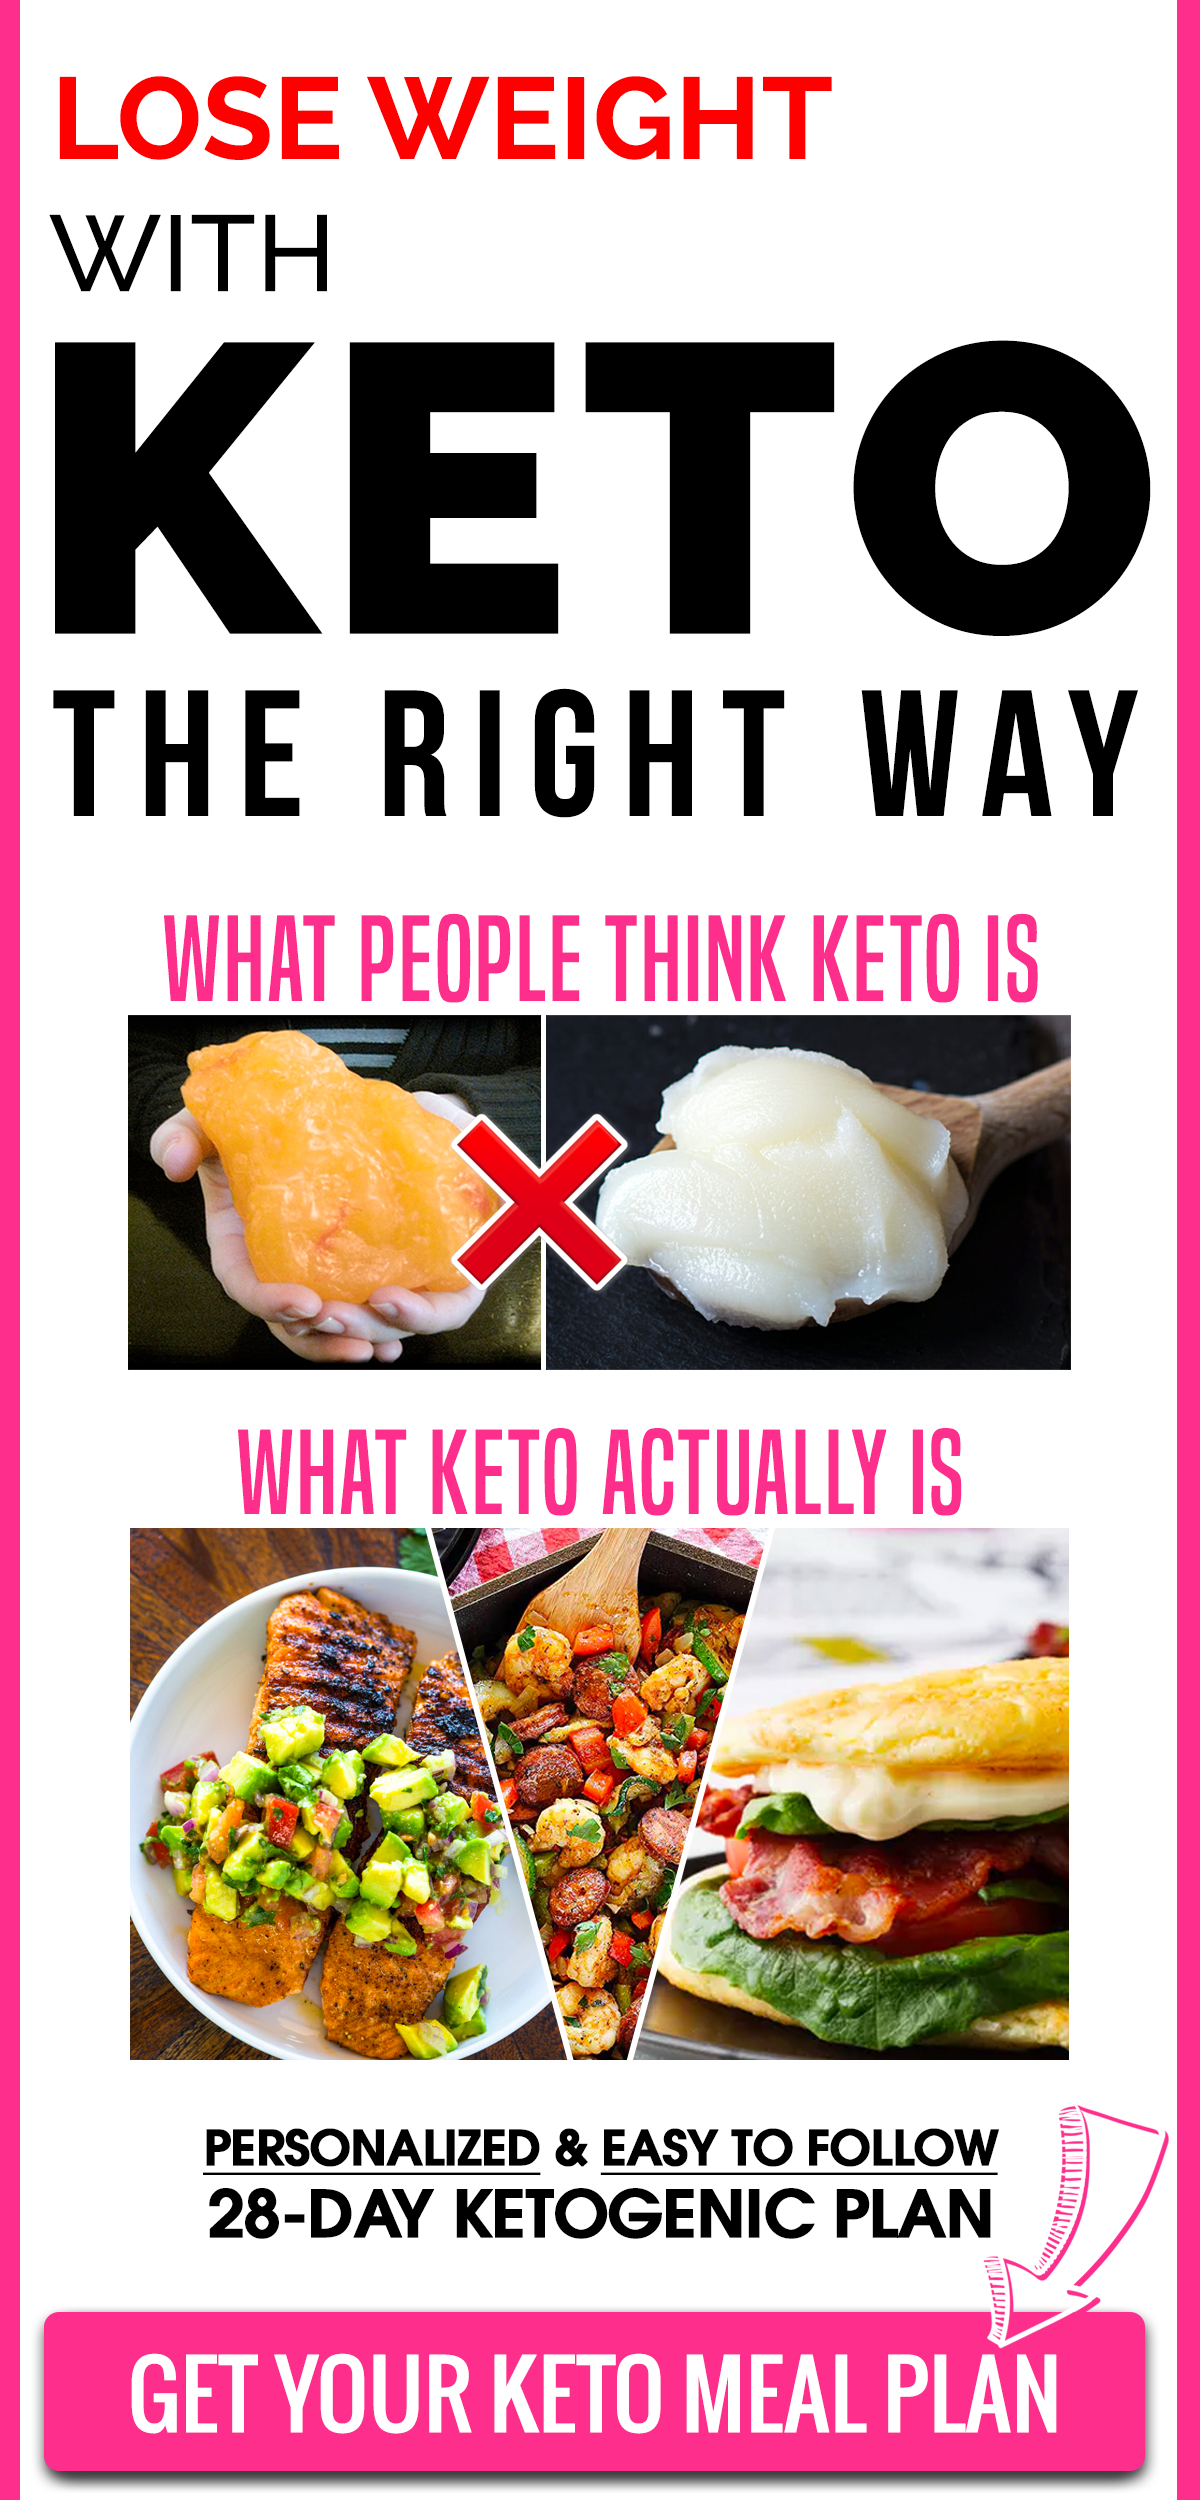 Most People Do Keto Wrong Take This 1 Minute Quiz For A Flexible Plan For Your Goals Ketogenic Diet Meal Plan Keto Meal Plan Meals